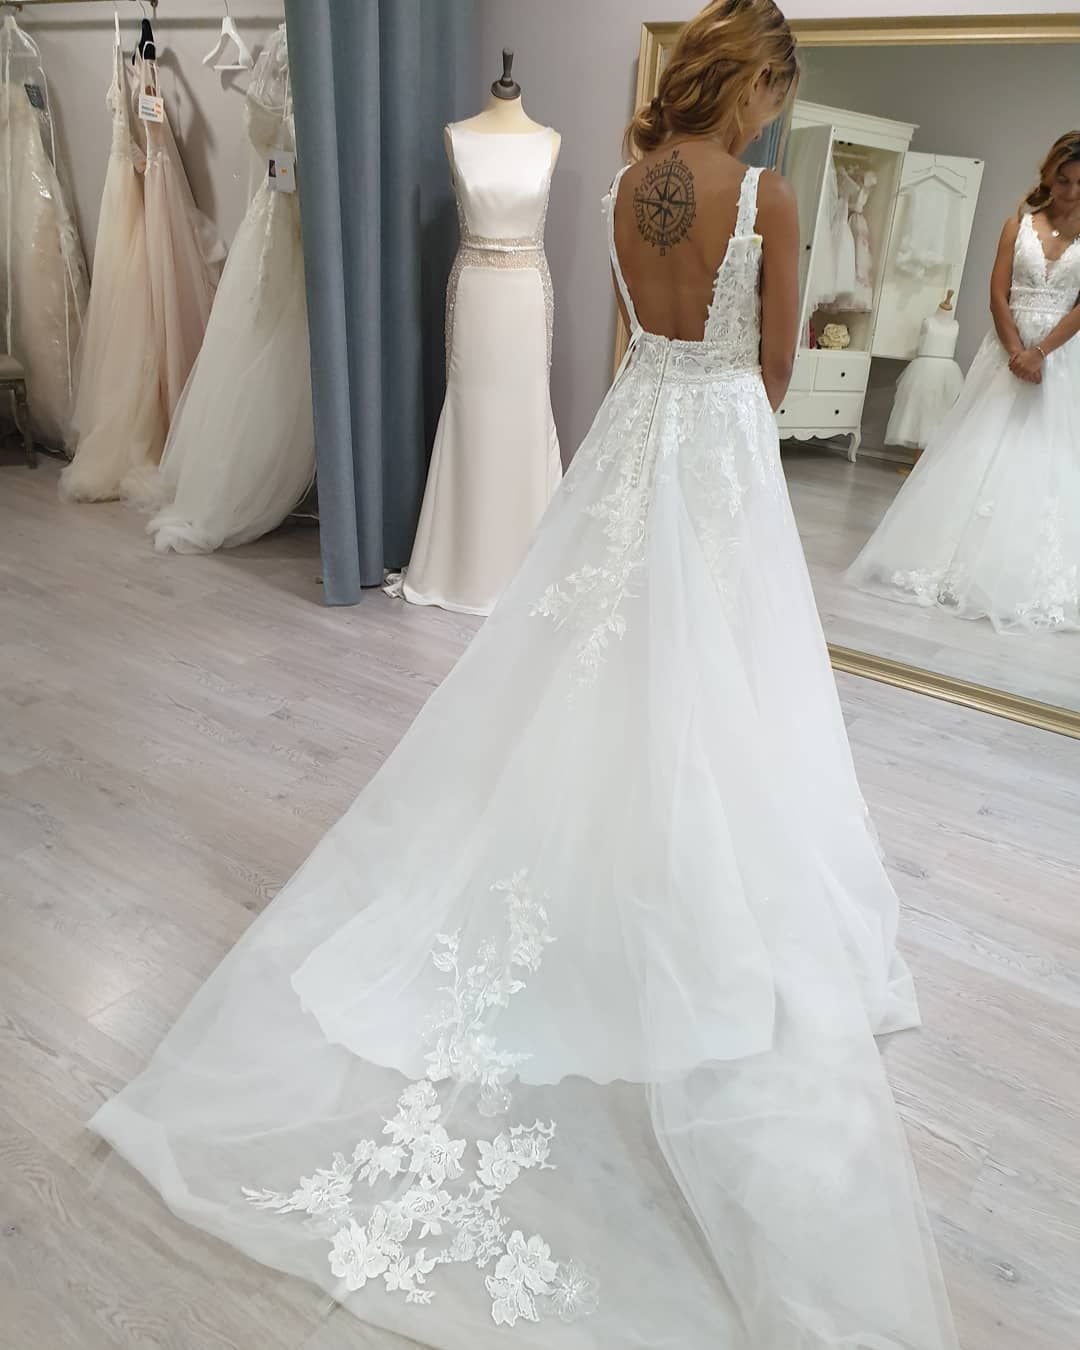 One Of The Favorites Of This T Wedding Dresses Wedding Dress Prices Wedding Dress Cost